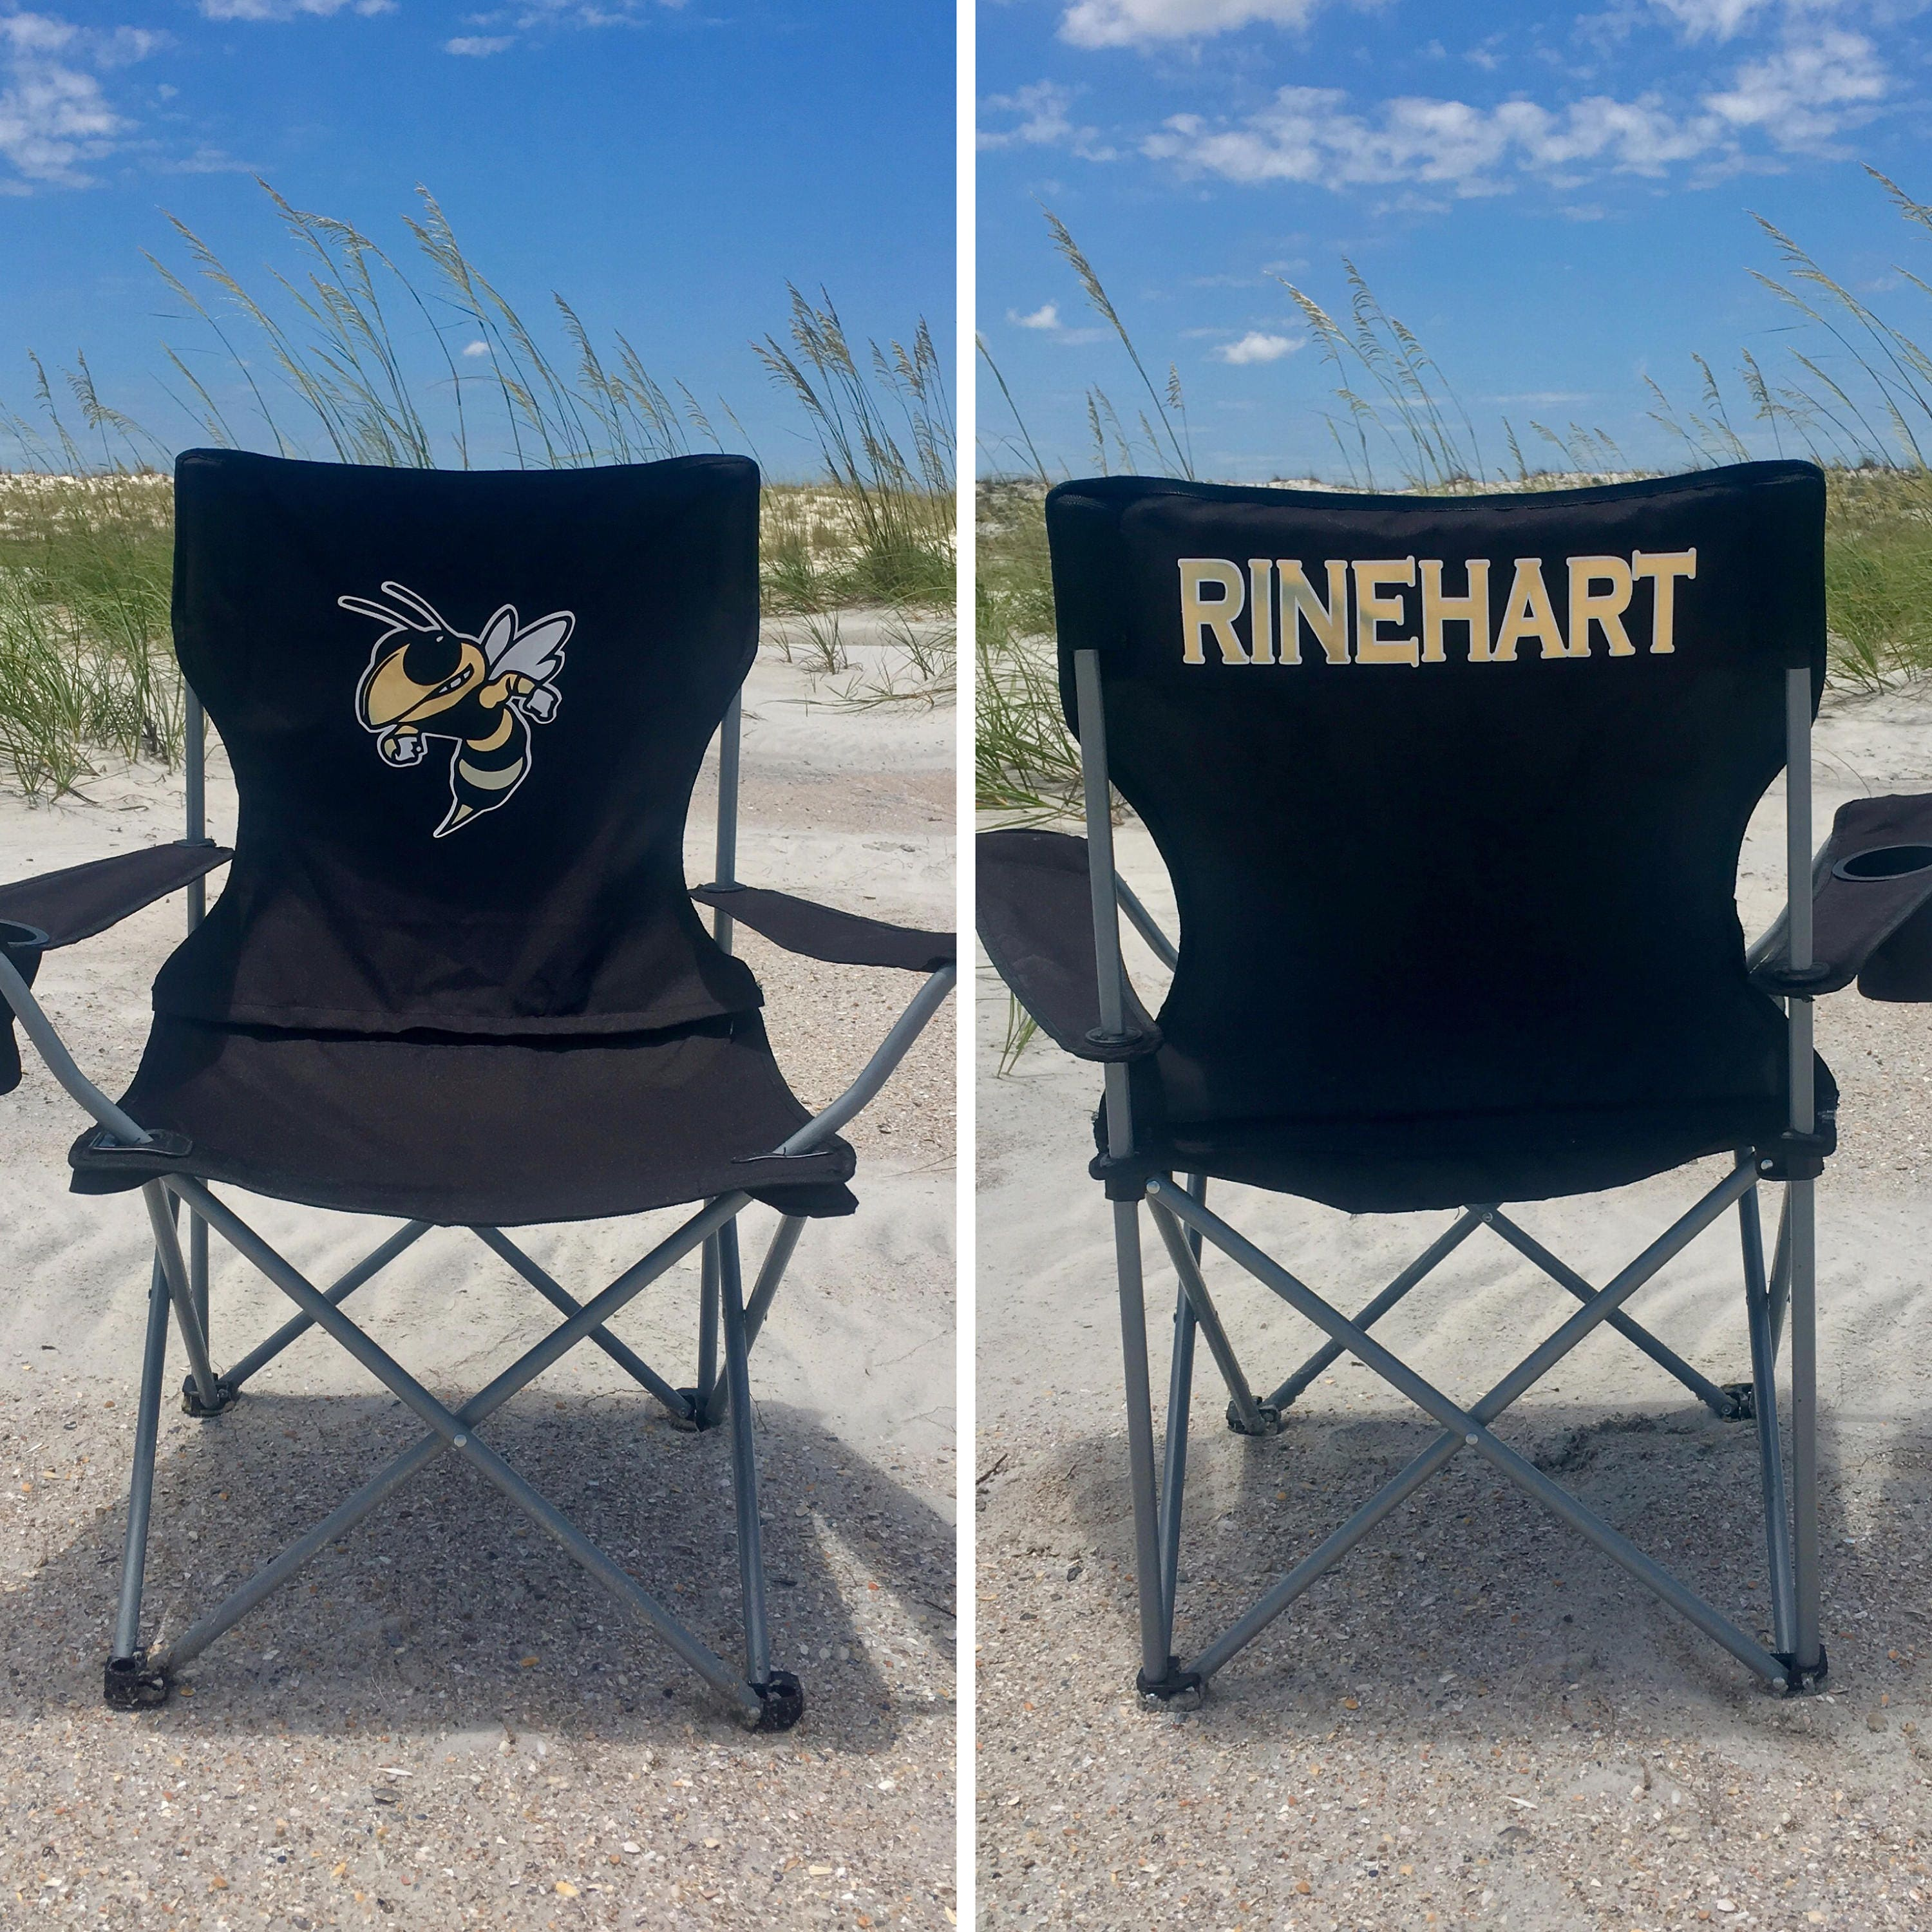 Custom Folding Chair, Personalized Chair, Beach Chair, Groomsman Gift,  Custom Camp Chair, Game Day Chair, Personalized Chairs